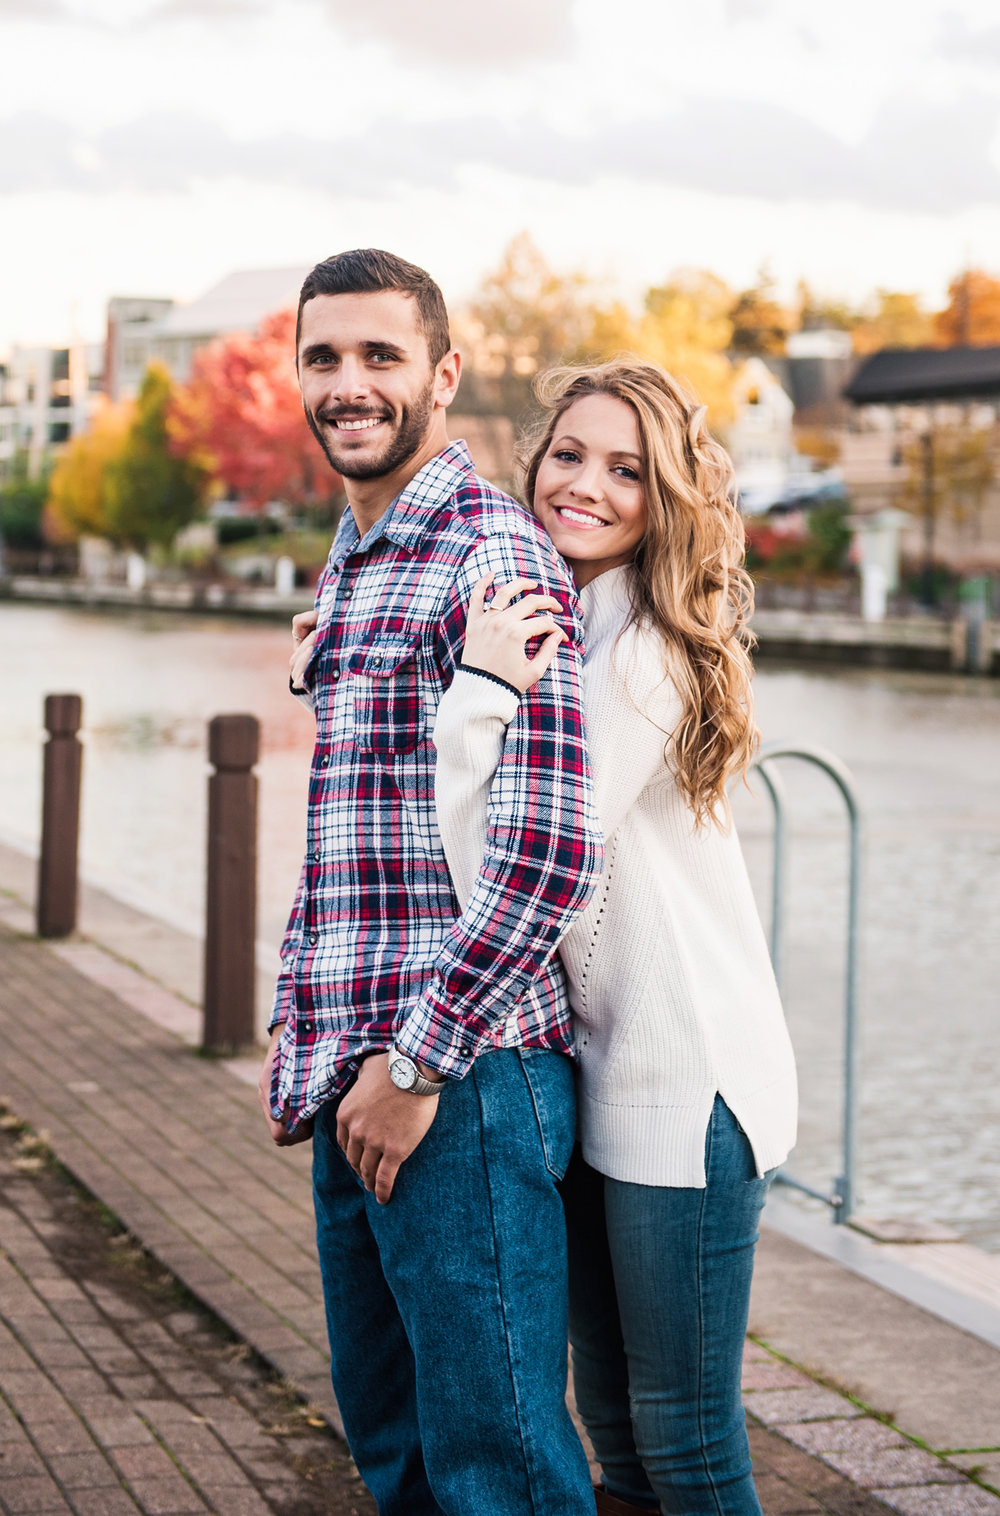 Village_of_Fairport_Rochester_Engagement_Session_JILL_STUDIO_Rochester_NY_Photographer_DSC_8758.jpg